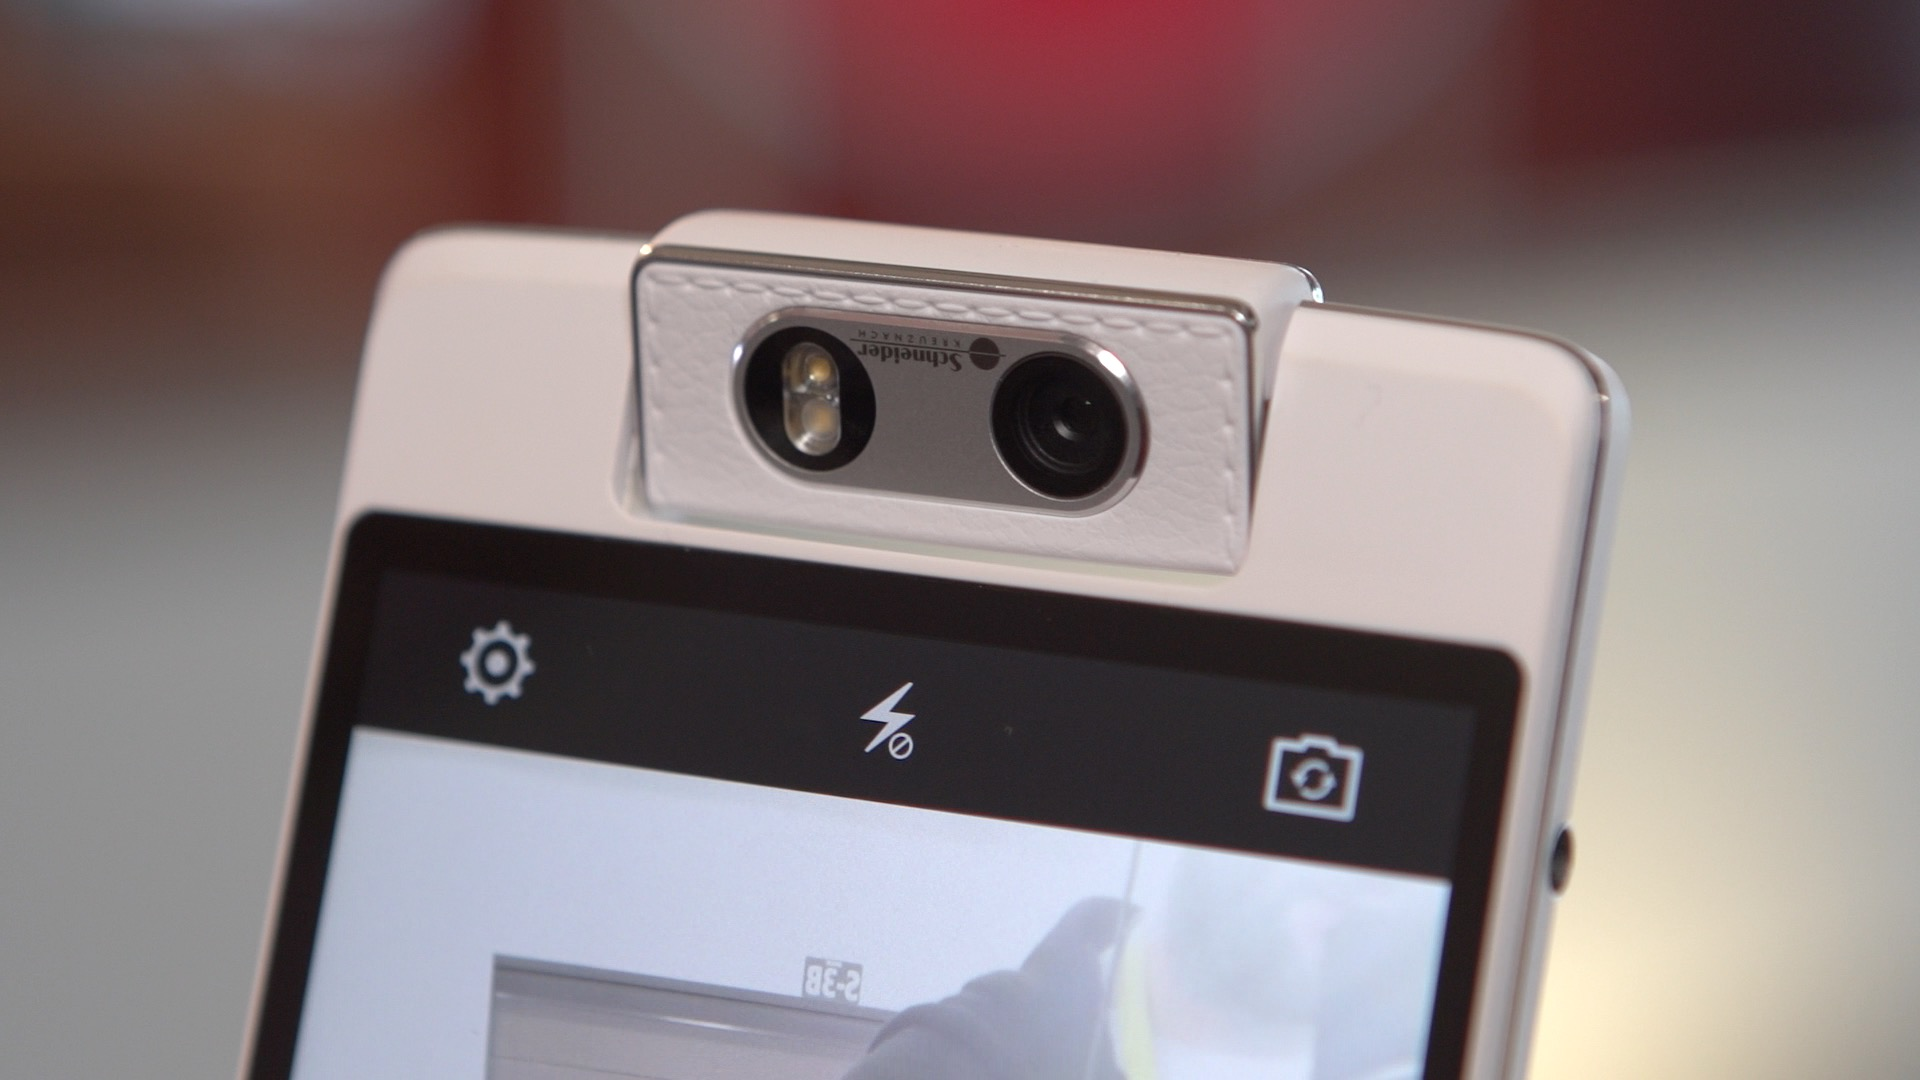 Video: Oppo N3 has a motorised spinning camera for superpowered selfies